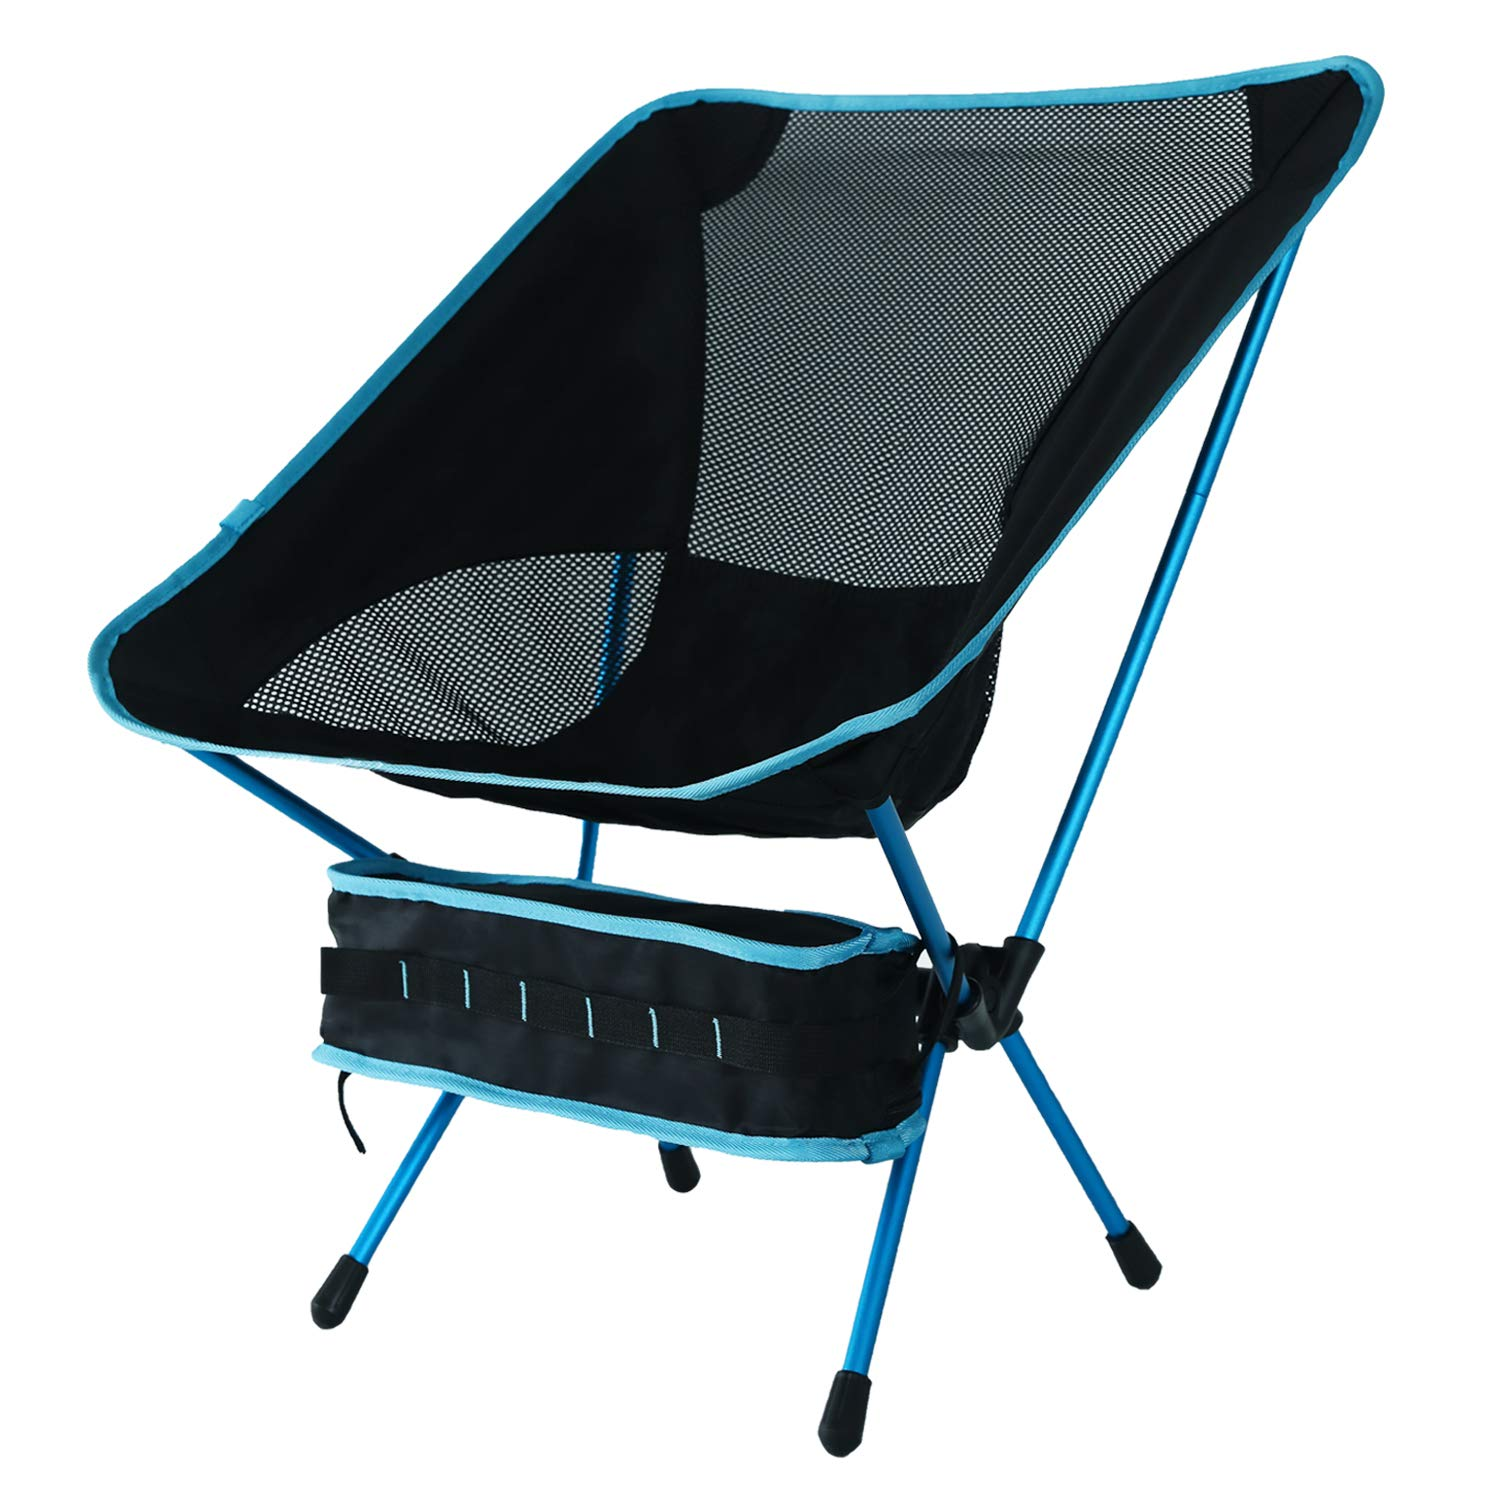 Outdoor Furniture Beach Chairs Portable Outdoor Fishing Chair Folding Backpack Camping Oxford Cloth Foldable Picnic Fishing Beach Chairs Lightweight Easy To Repair